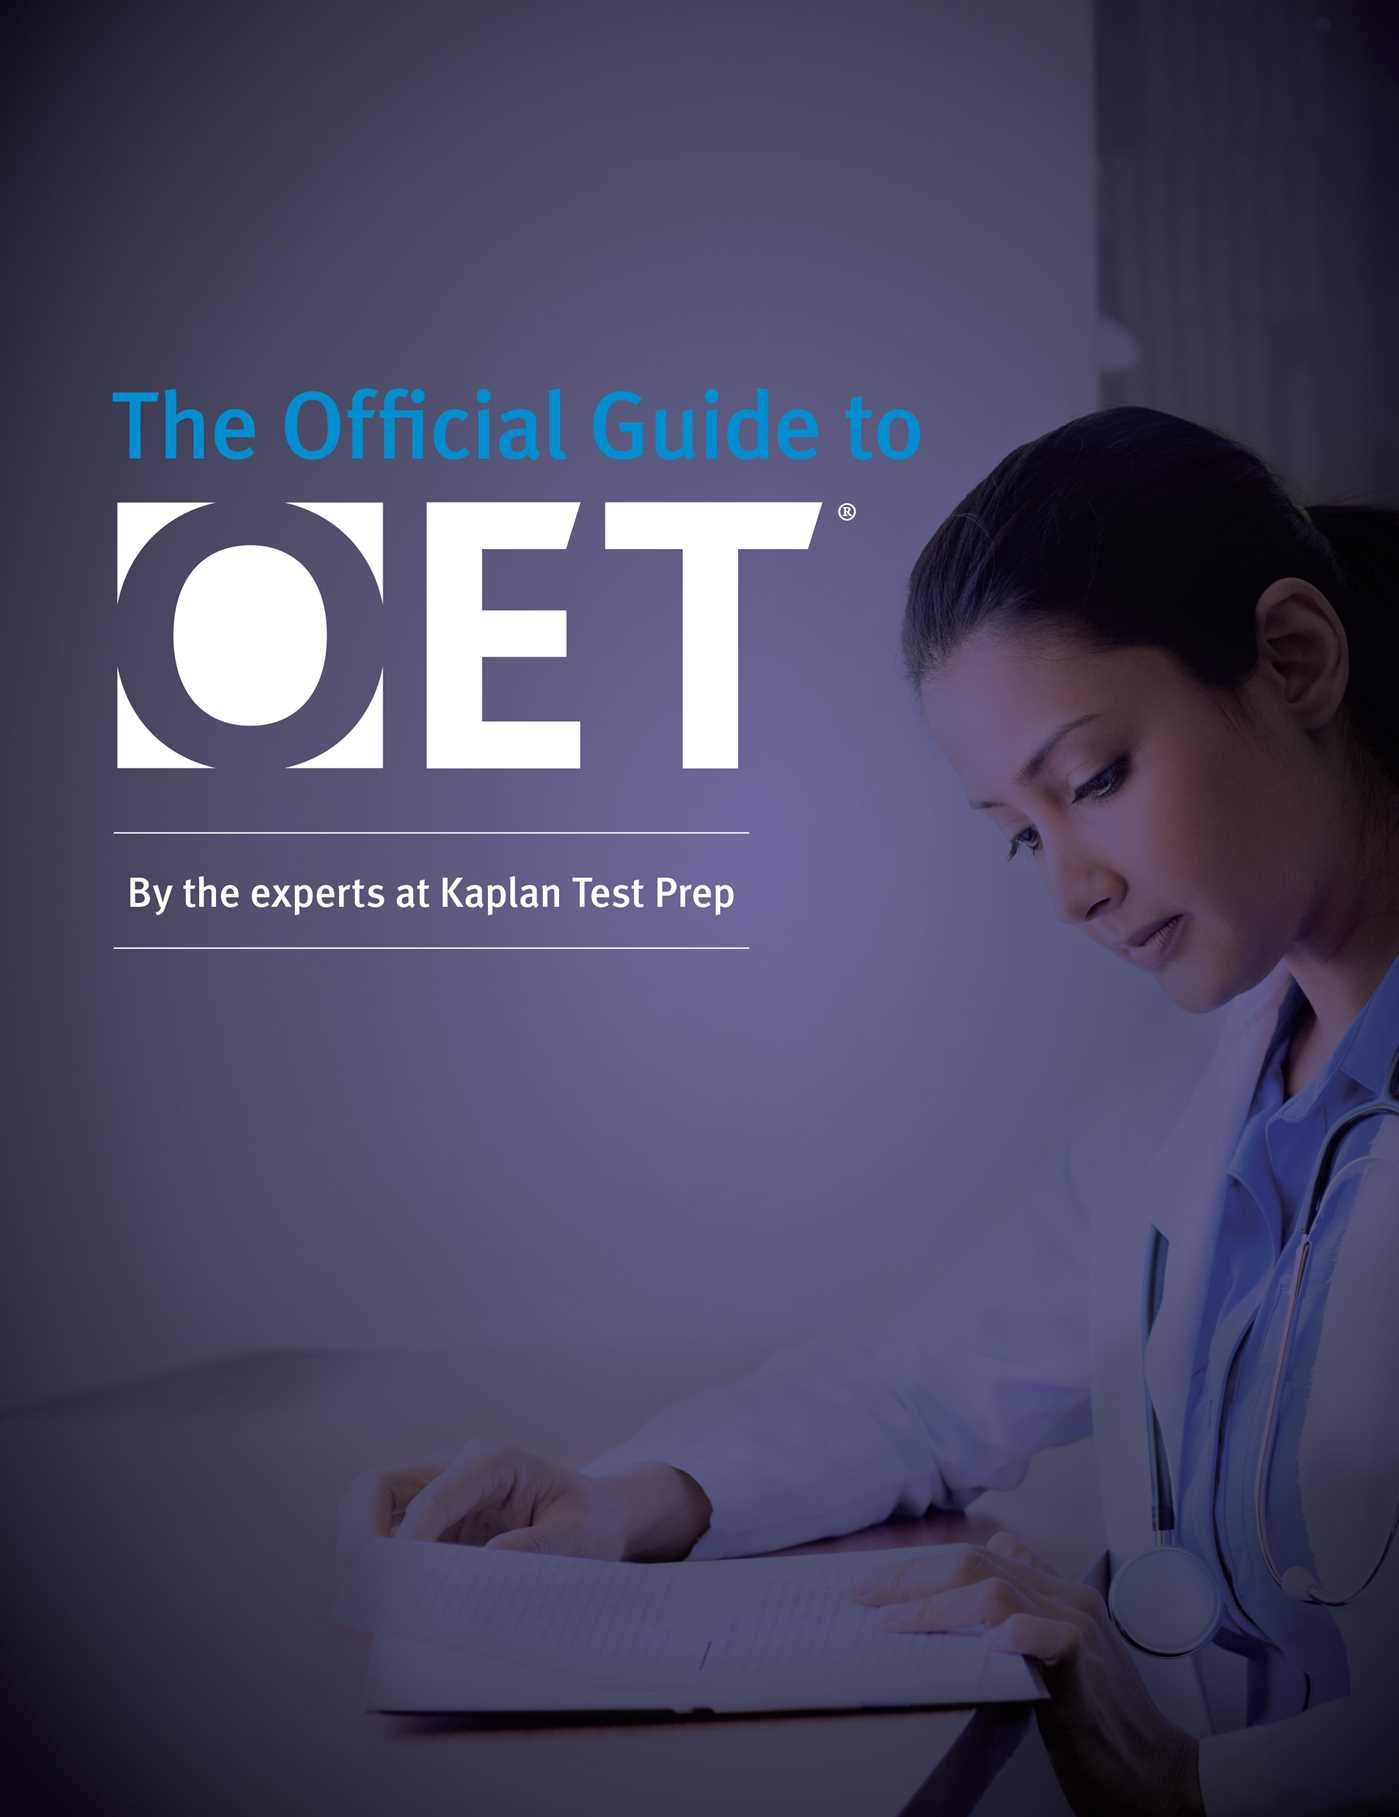 Official guide to oet 9781506247250 hr